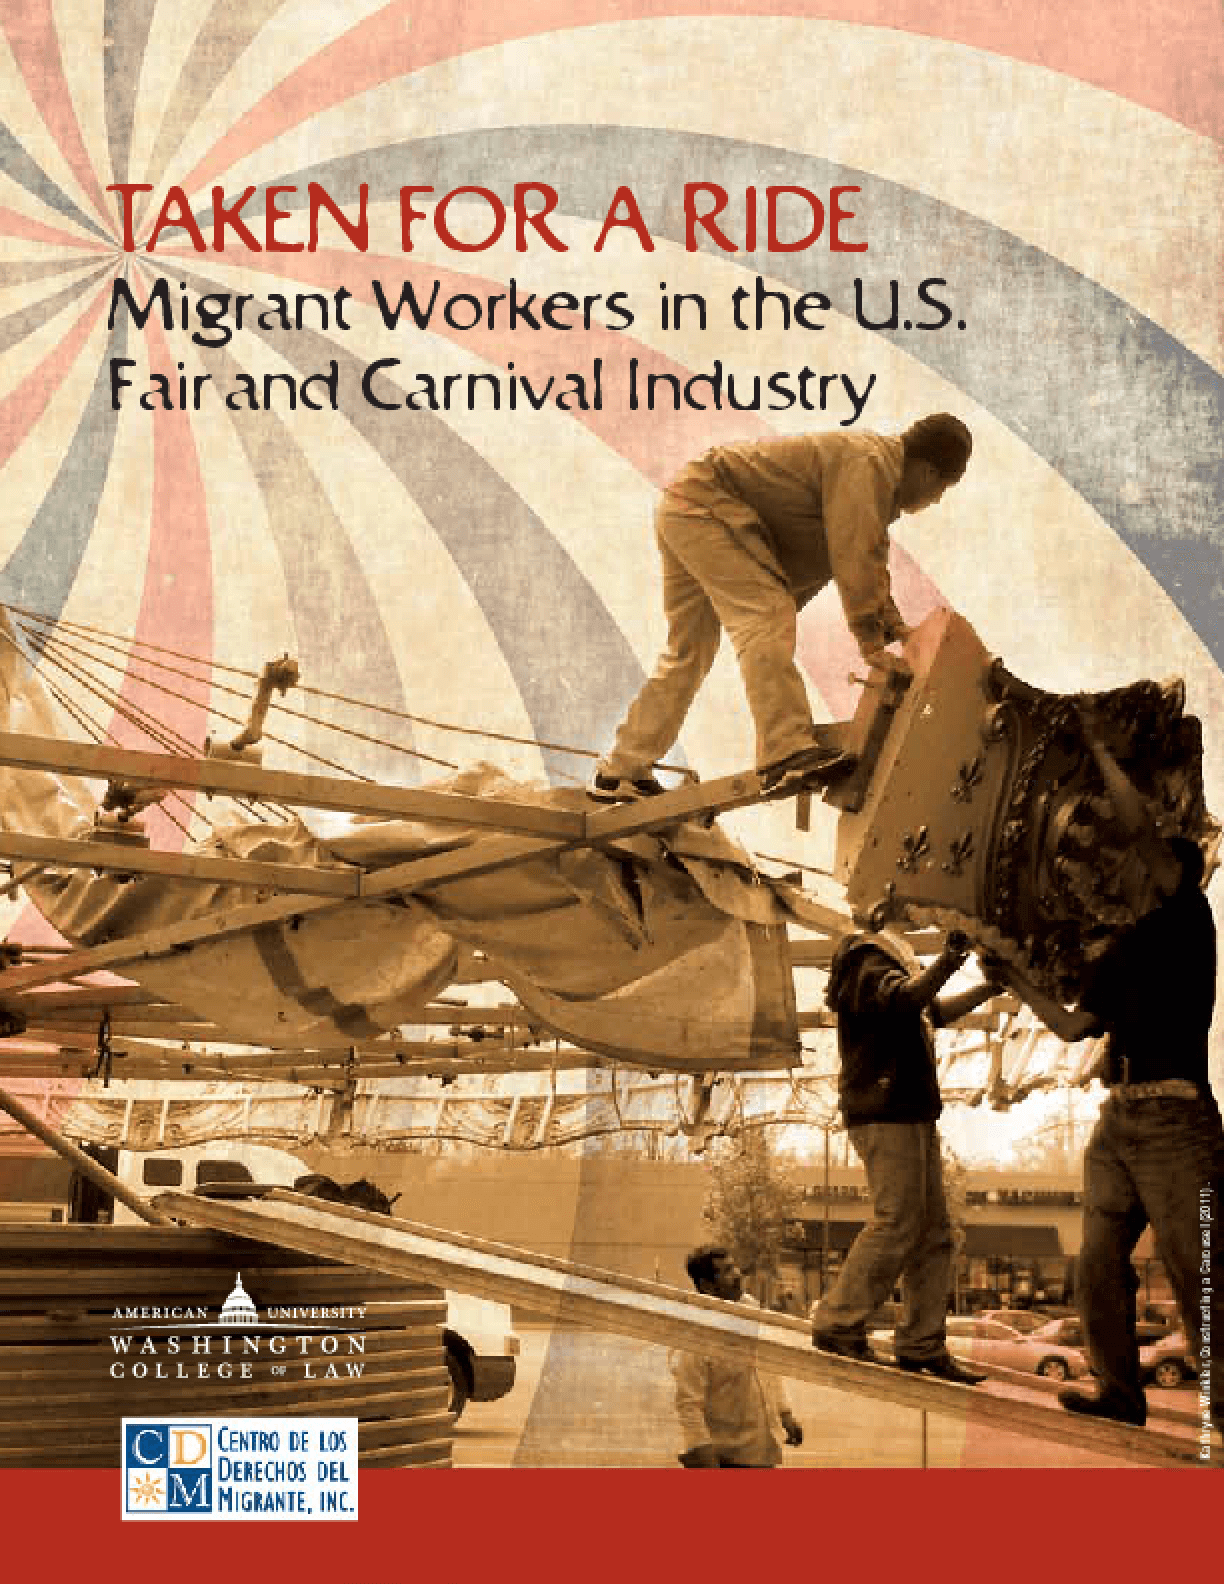 Taken for a Ride: Migrant Workers in the U.S. Fair and Carnival Industry